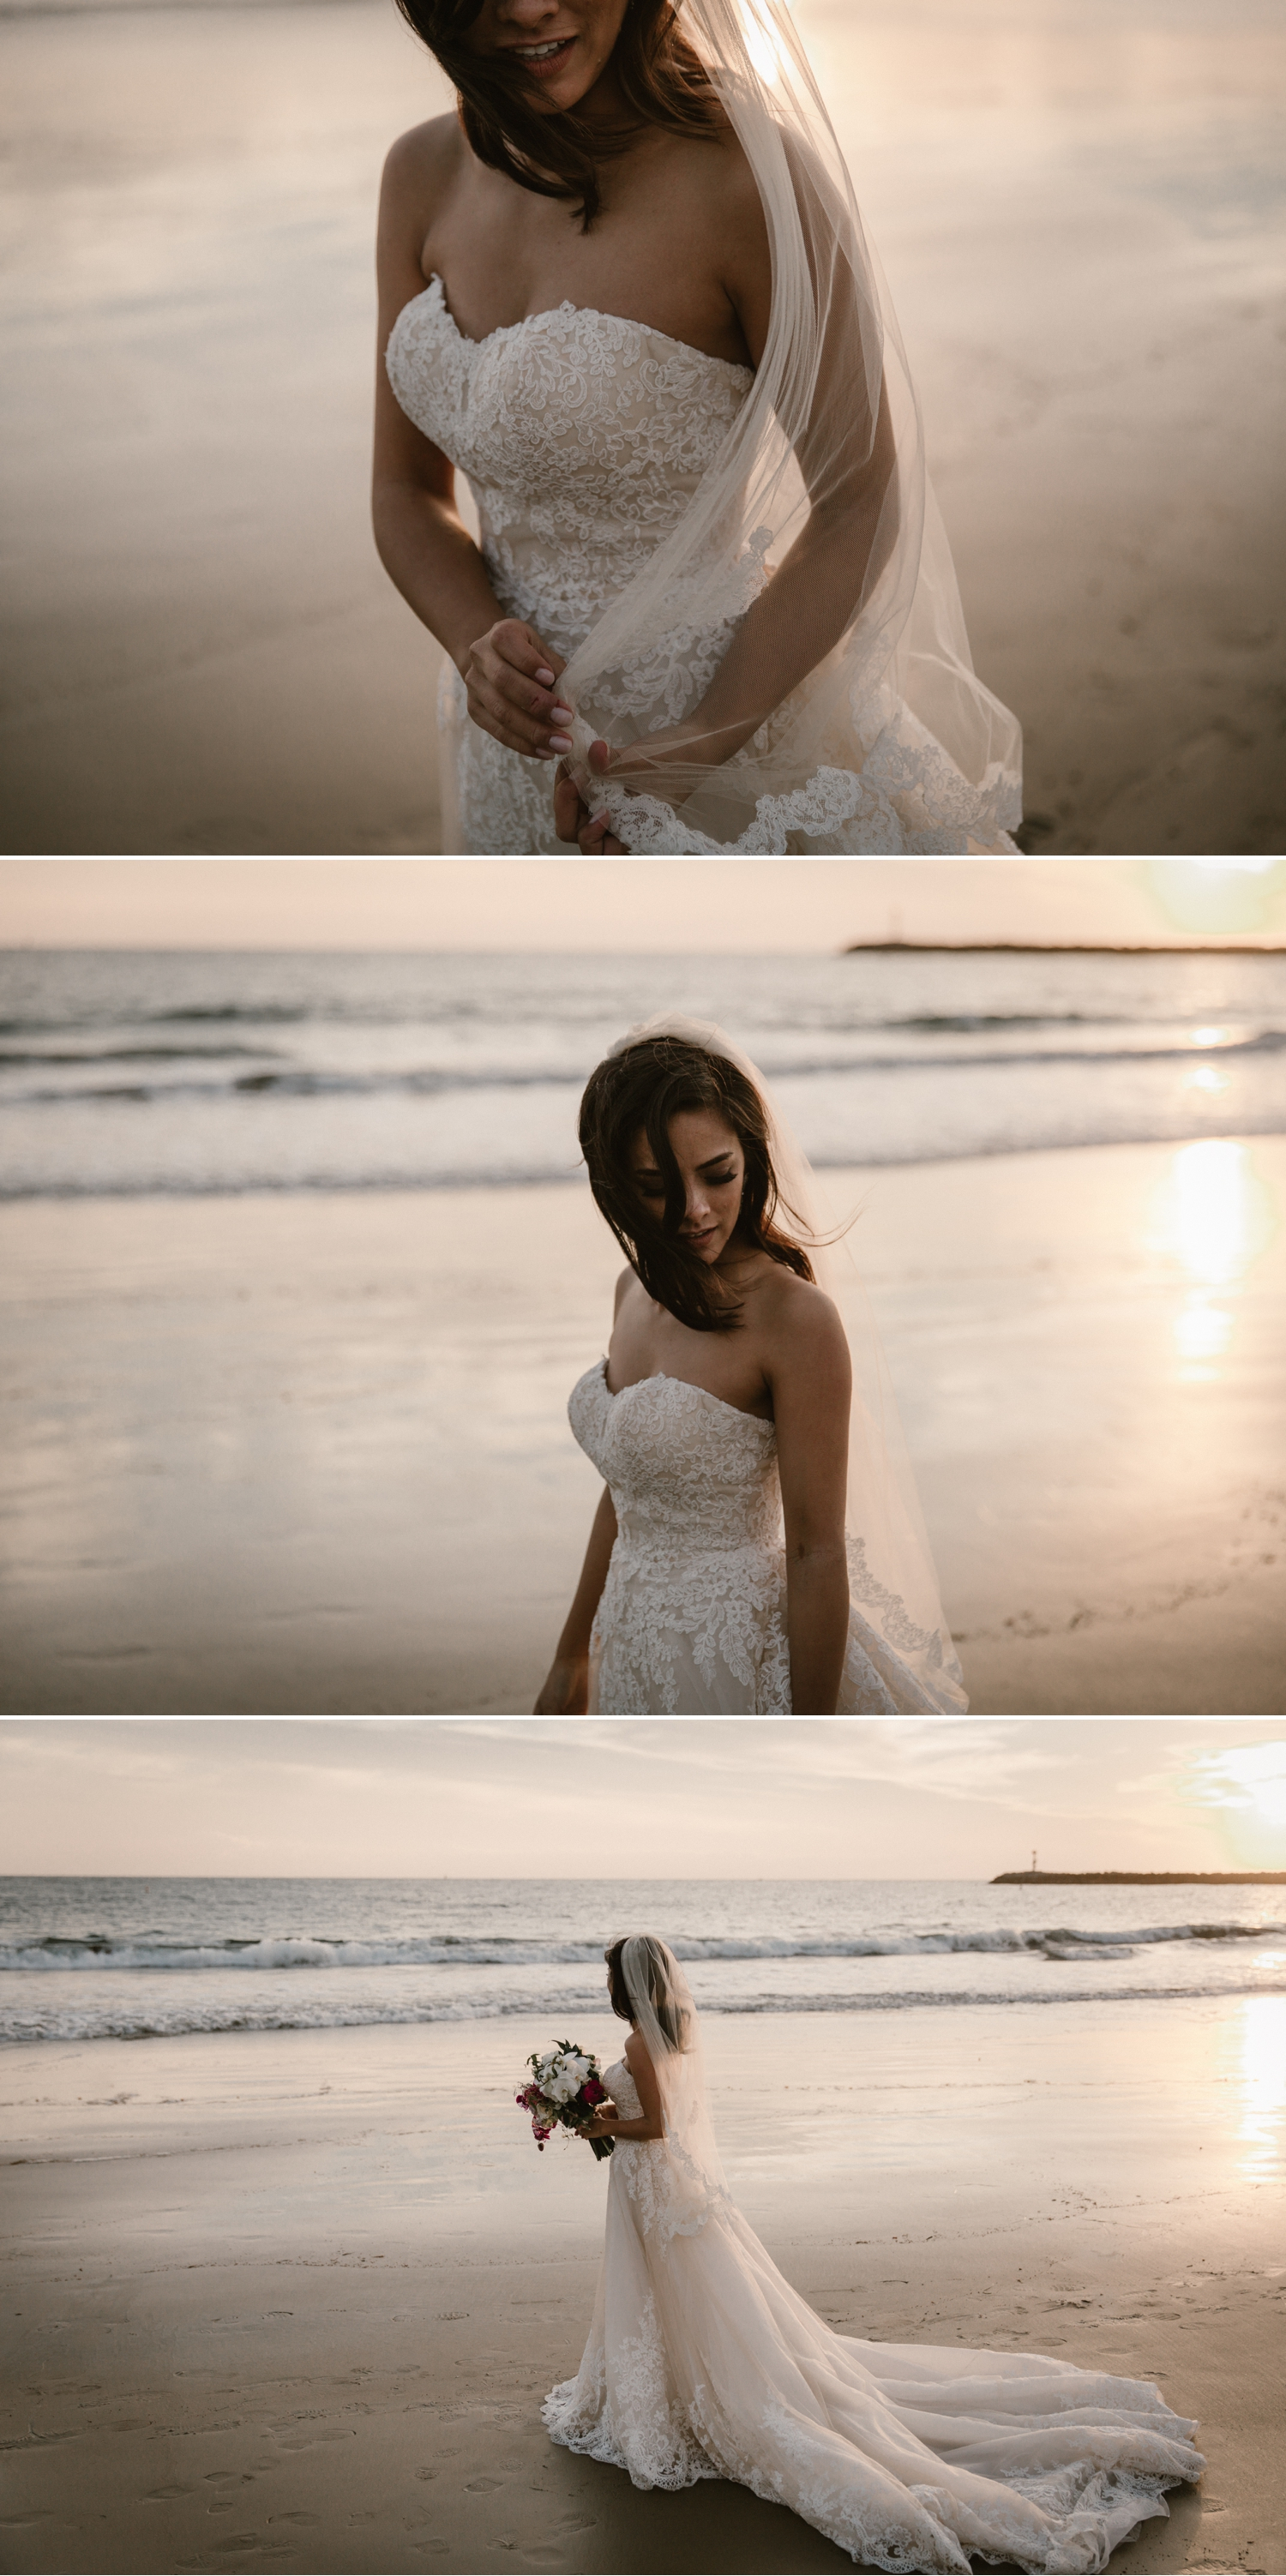 Beach bridal portraits at Inspiration Point in Corona del Mar by Paige Nelson